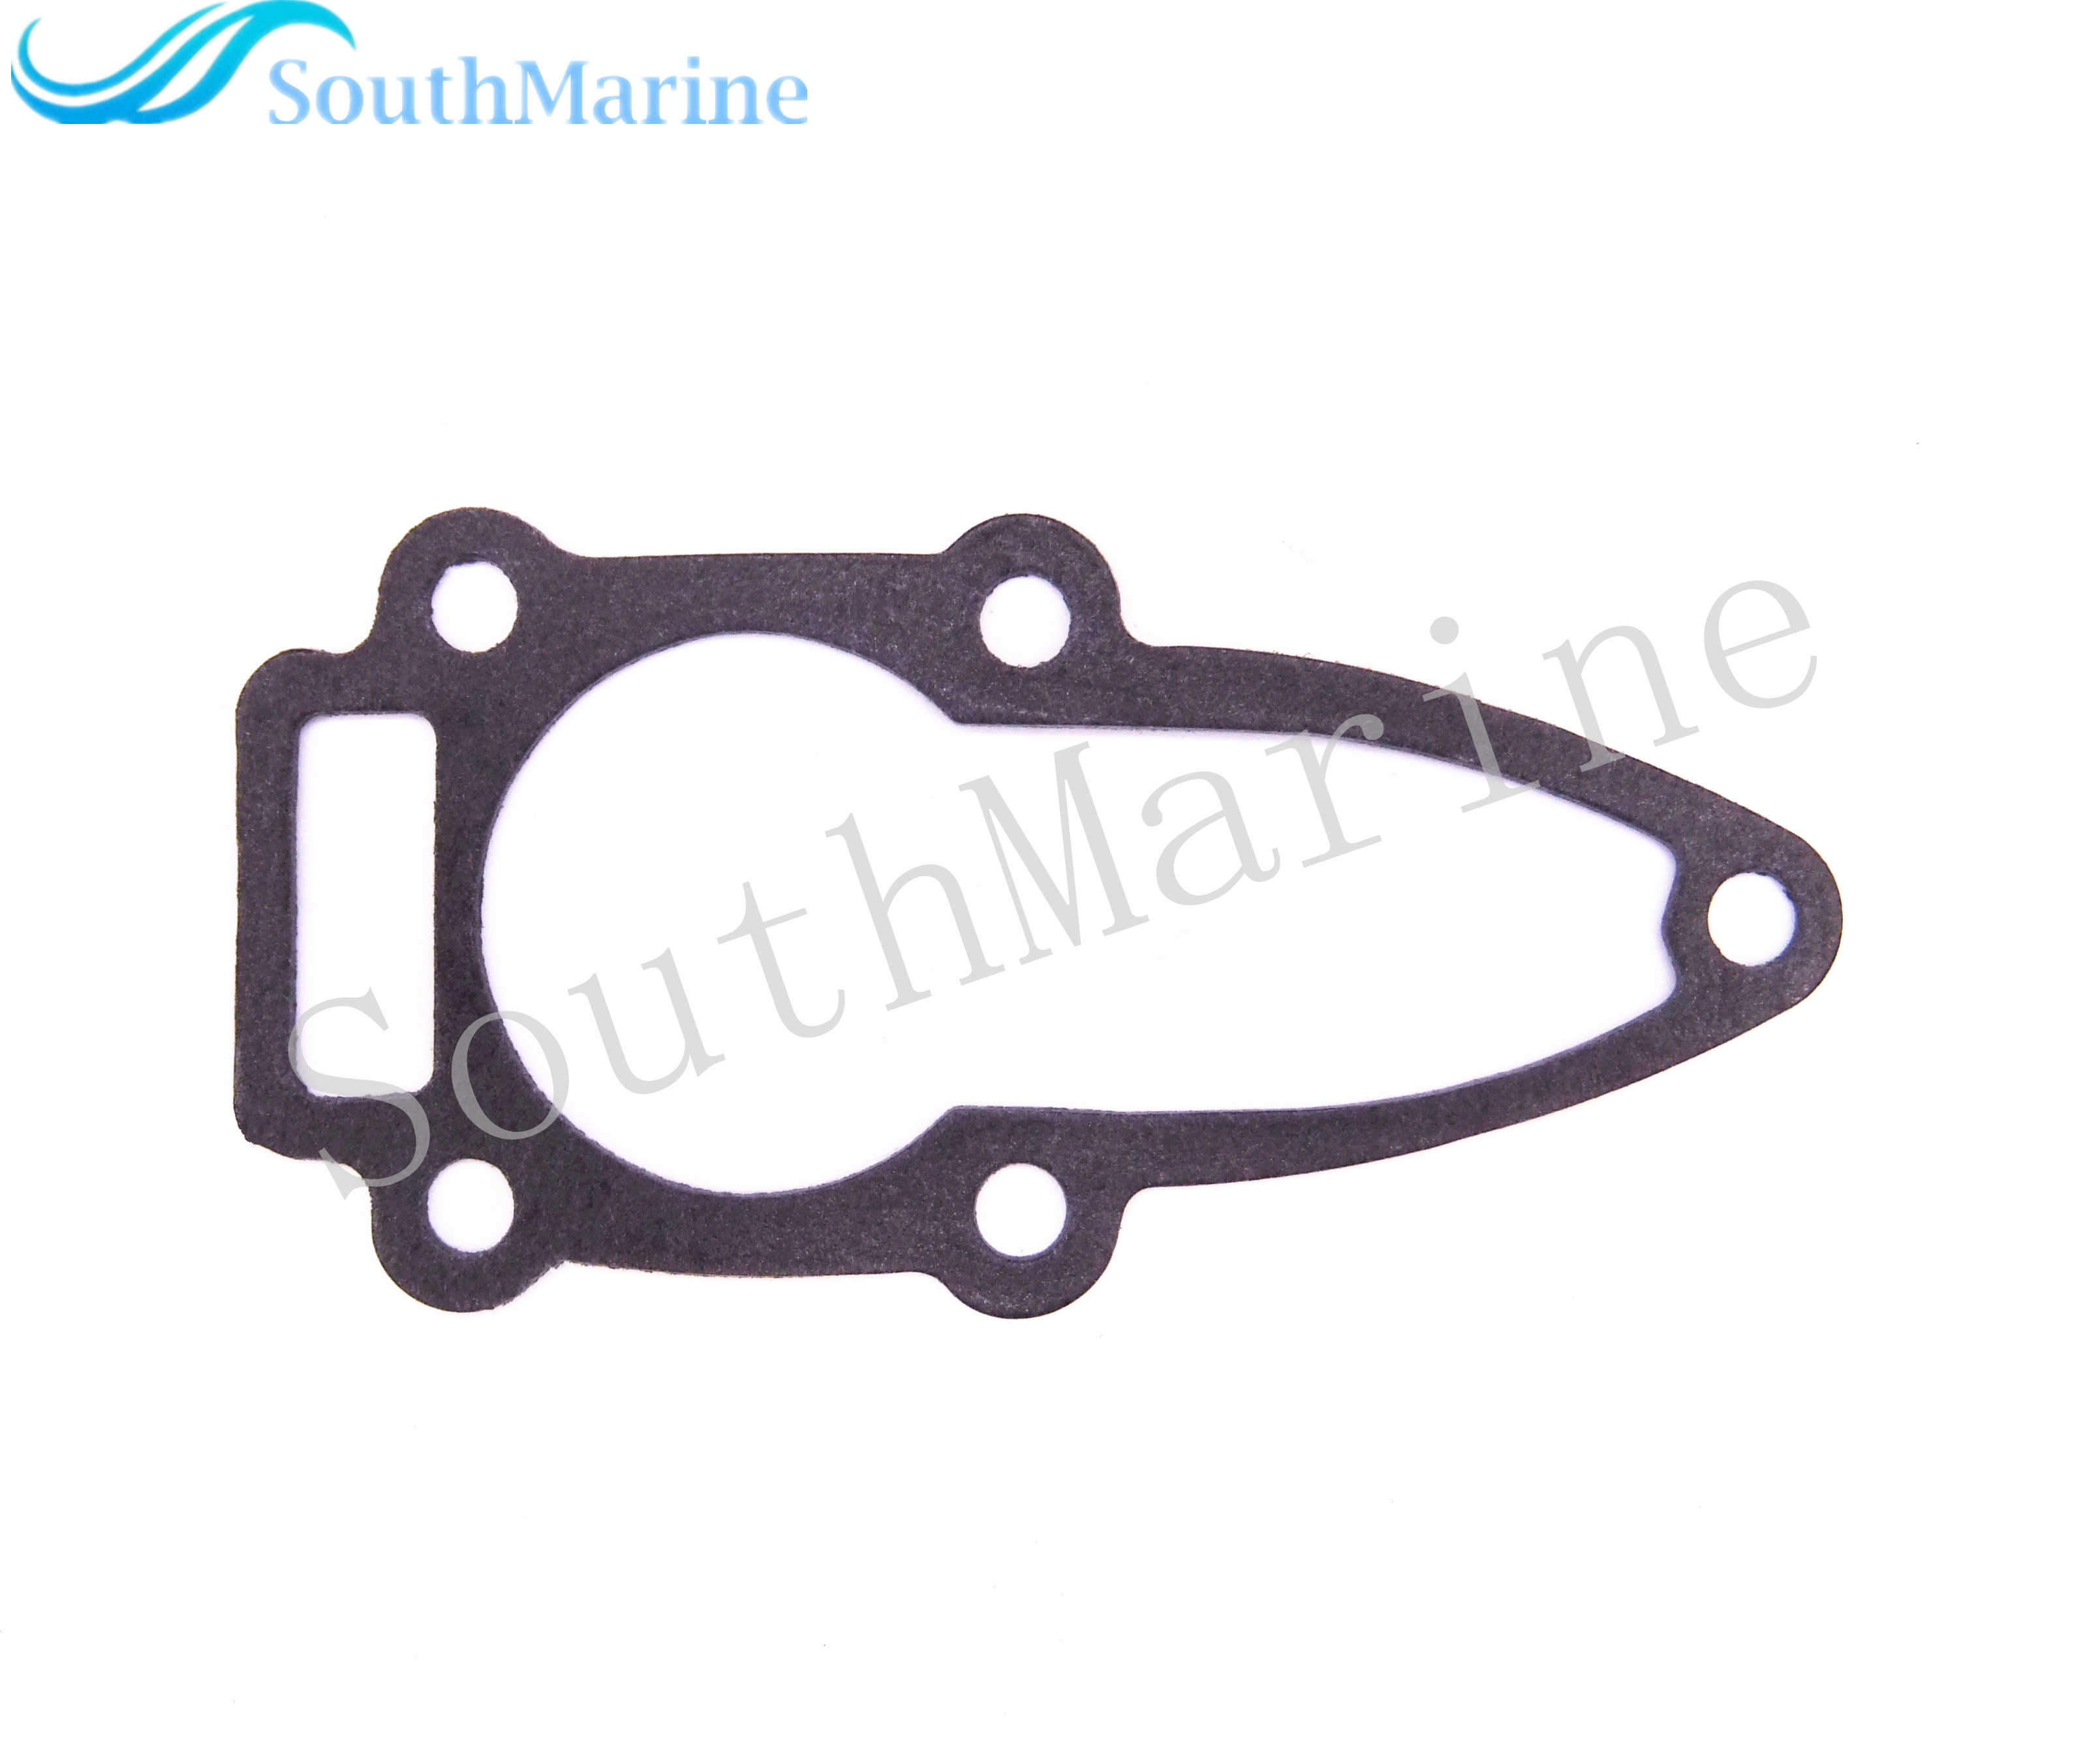 Boat Motor F8-04000005 Water Pump Seat Gasket for Parsun 2-Stroke F8 F9.8 T6 T8 T9.8 Outboard Engine